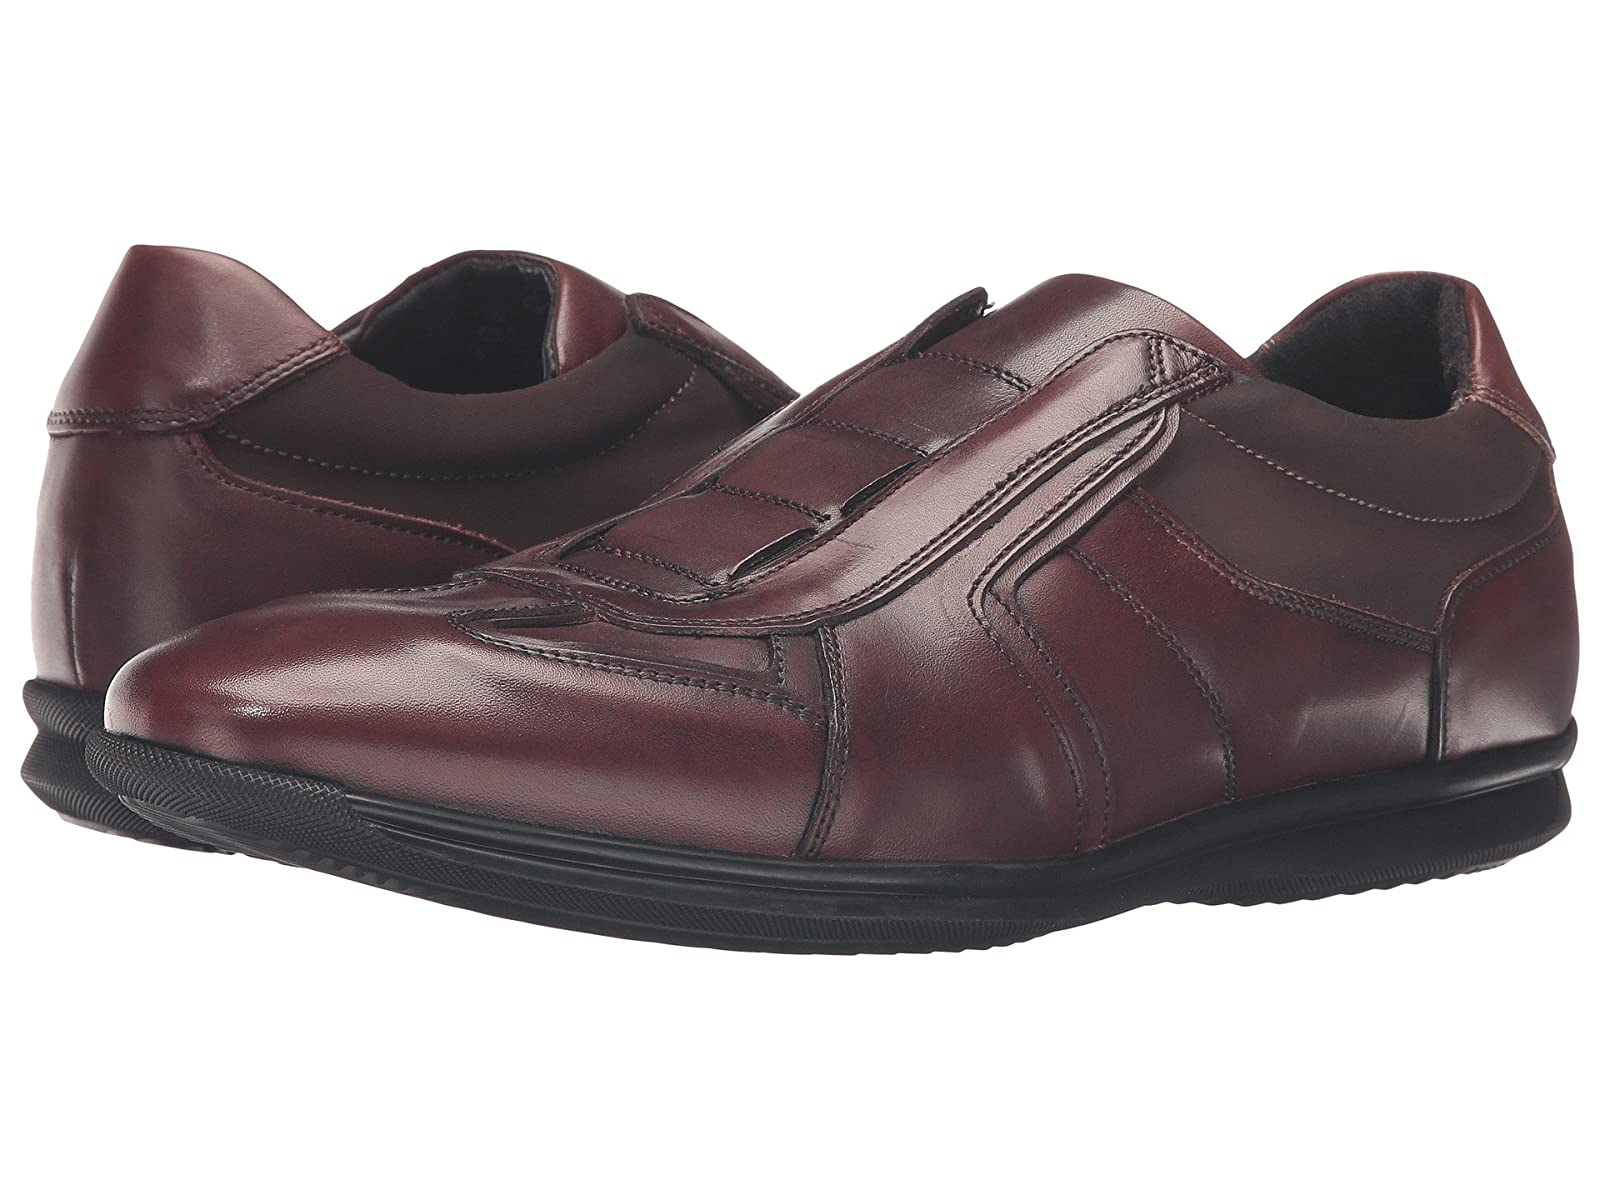 Bacco Bucci BacaAtmospheric grades have affordable shoes